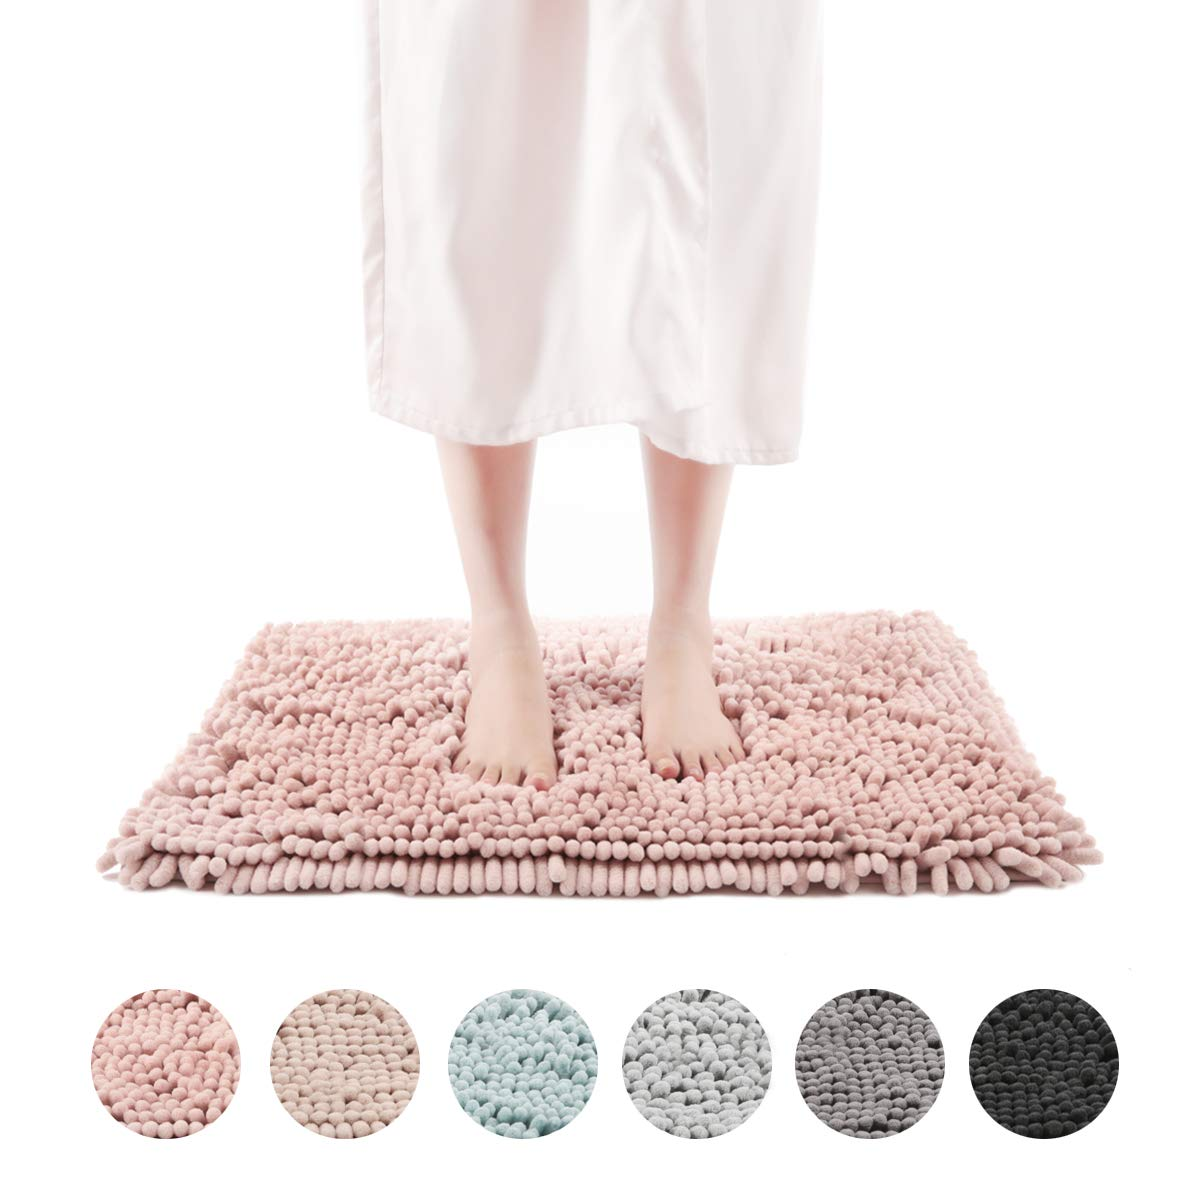 Freshmint Chenille Bath Rugs Extra Soft and Absorbent Microfiber Shag Rug, Non-Slip Runner Carpet for Tub Bathroom Shower Mat, Machine-Washable Durable Thick Area Rugs (16.5'' x 24'', Pink)